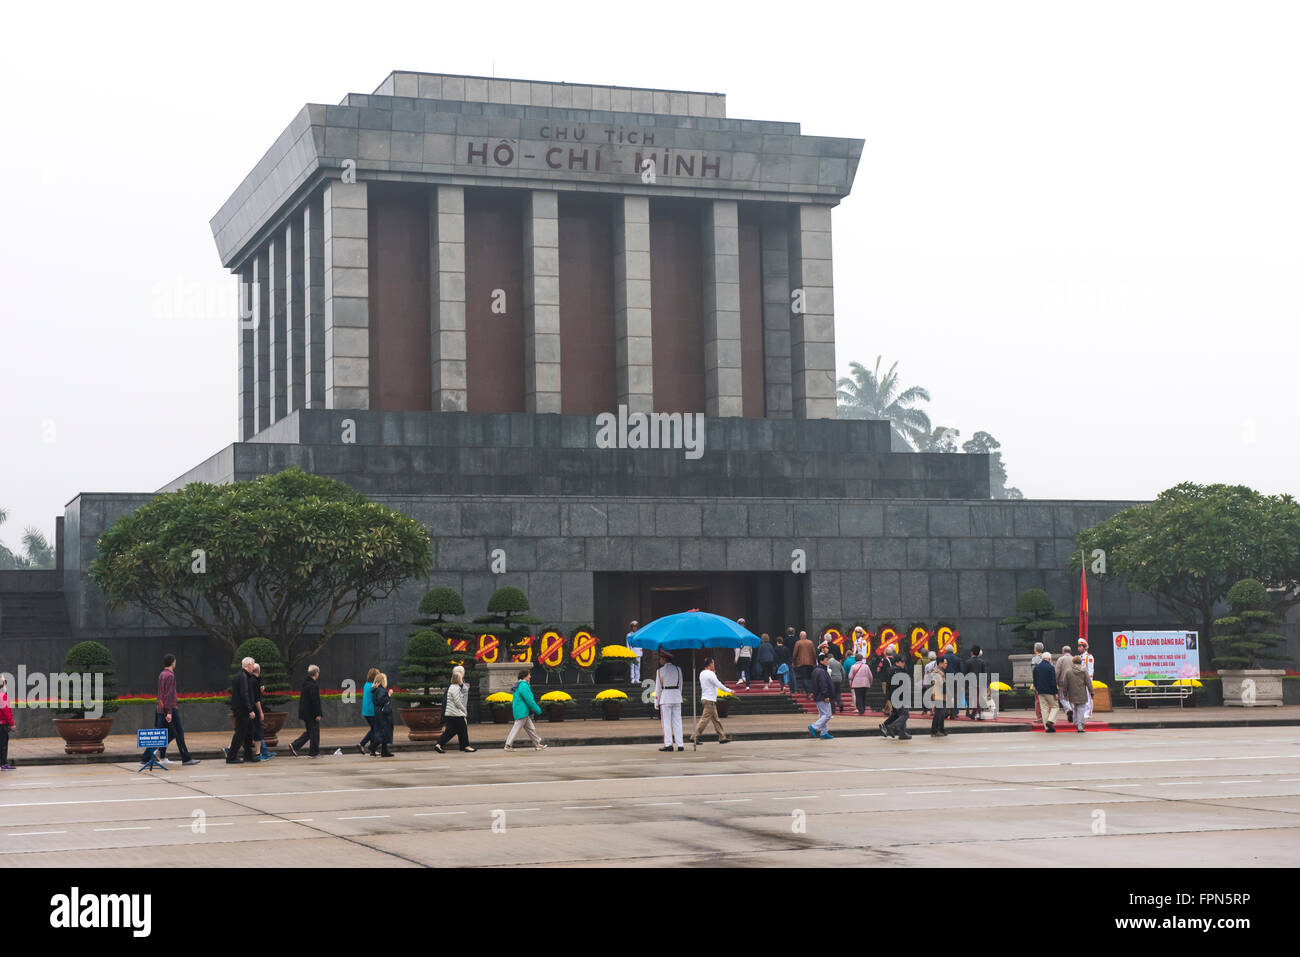 Tourists entering the Ho Chi Minh Mausoleum to view the embalmed leader.  Hanoi - Stock Image